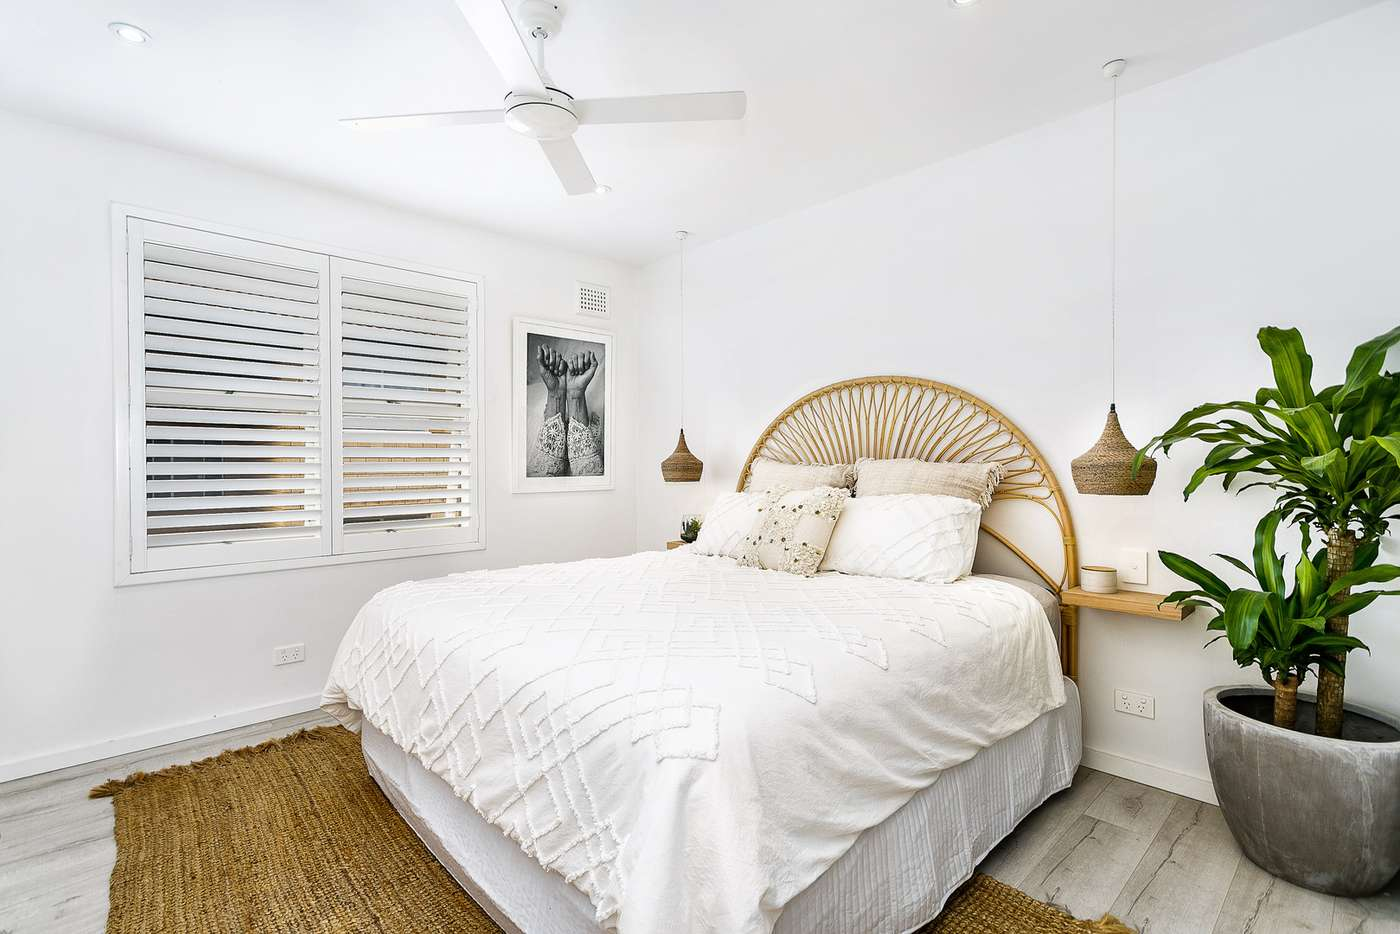 Sixth view of Homely apartment listing, 5/5 Jenkins Street, Collaroy NSW 2097